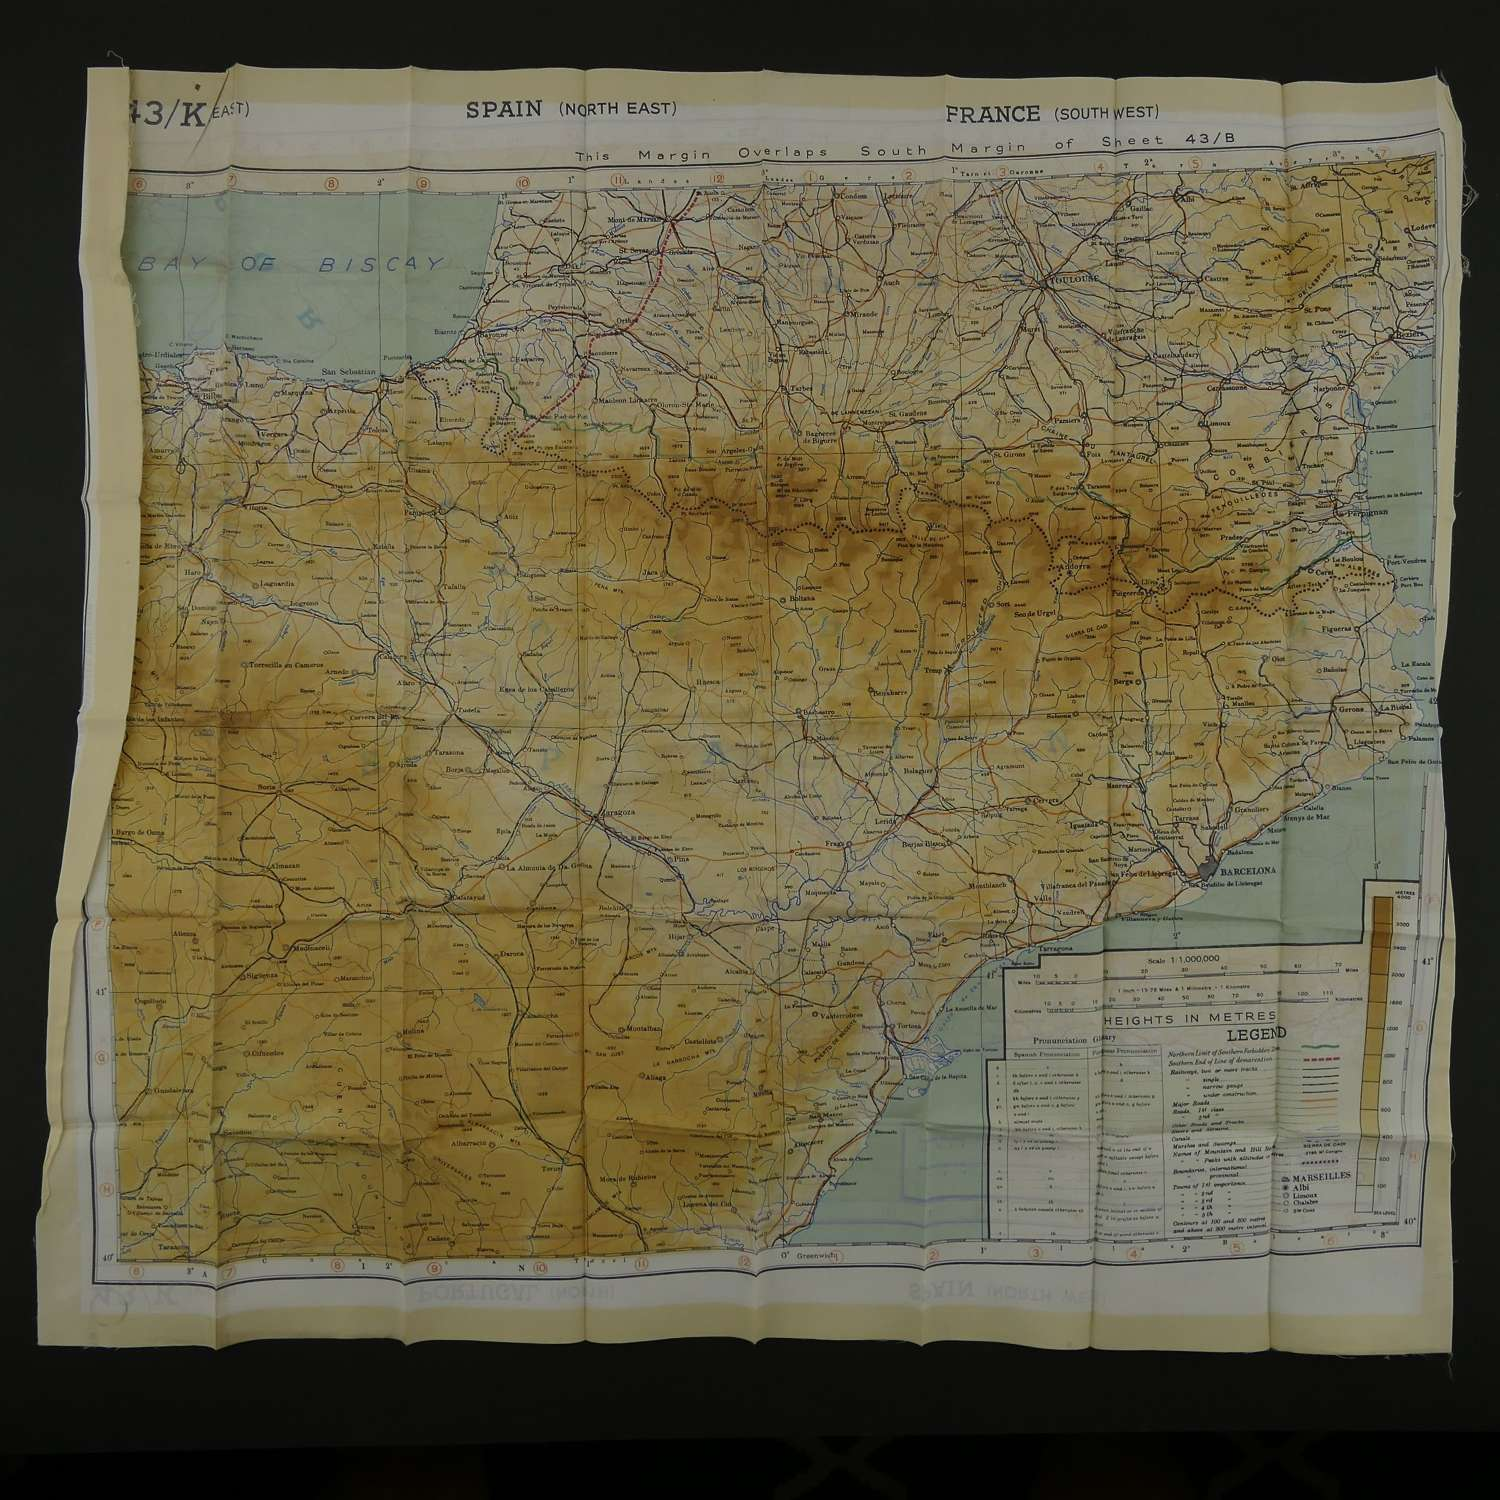 RAF escape & evasion map, sheet 43JK, European